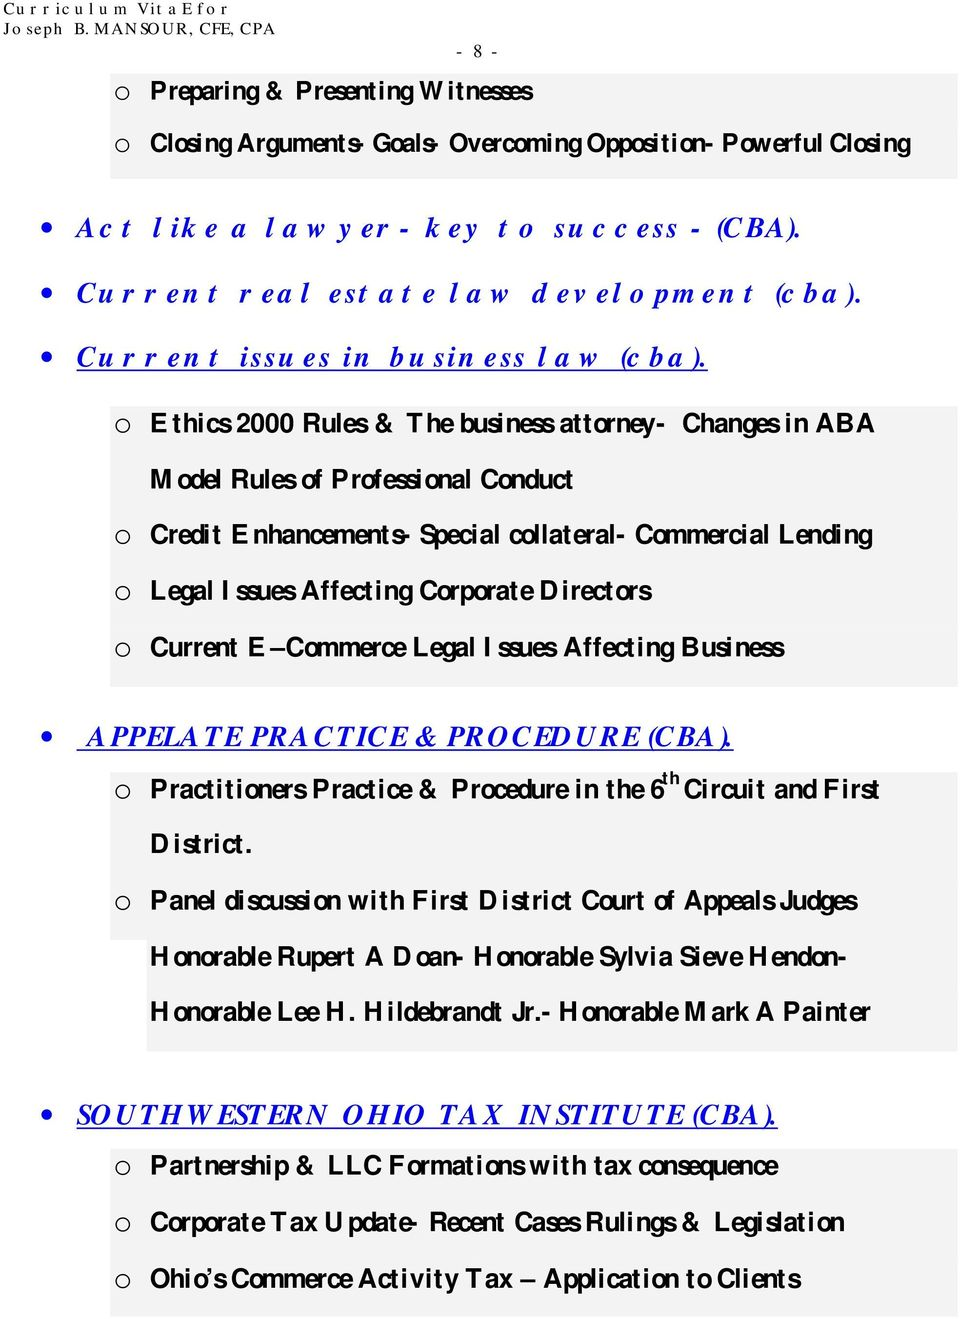 o Ethics 2000 Rules & The business attorney- Changes in ABA Model Rules of Professional Conduct o Credit Enhancements- Special collateral- Commercial Lending o Legal Issues Affecting Corporate